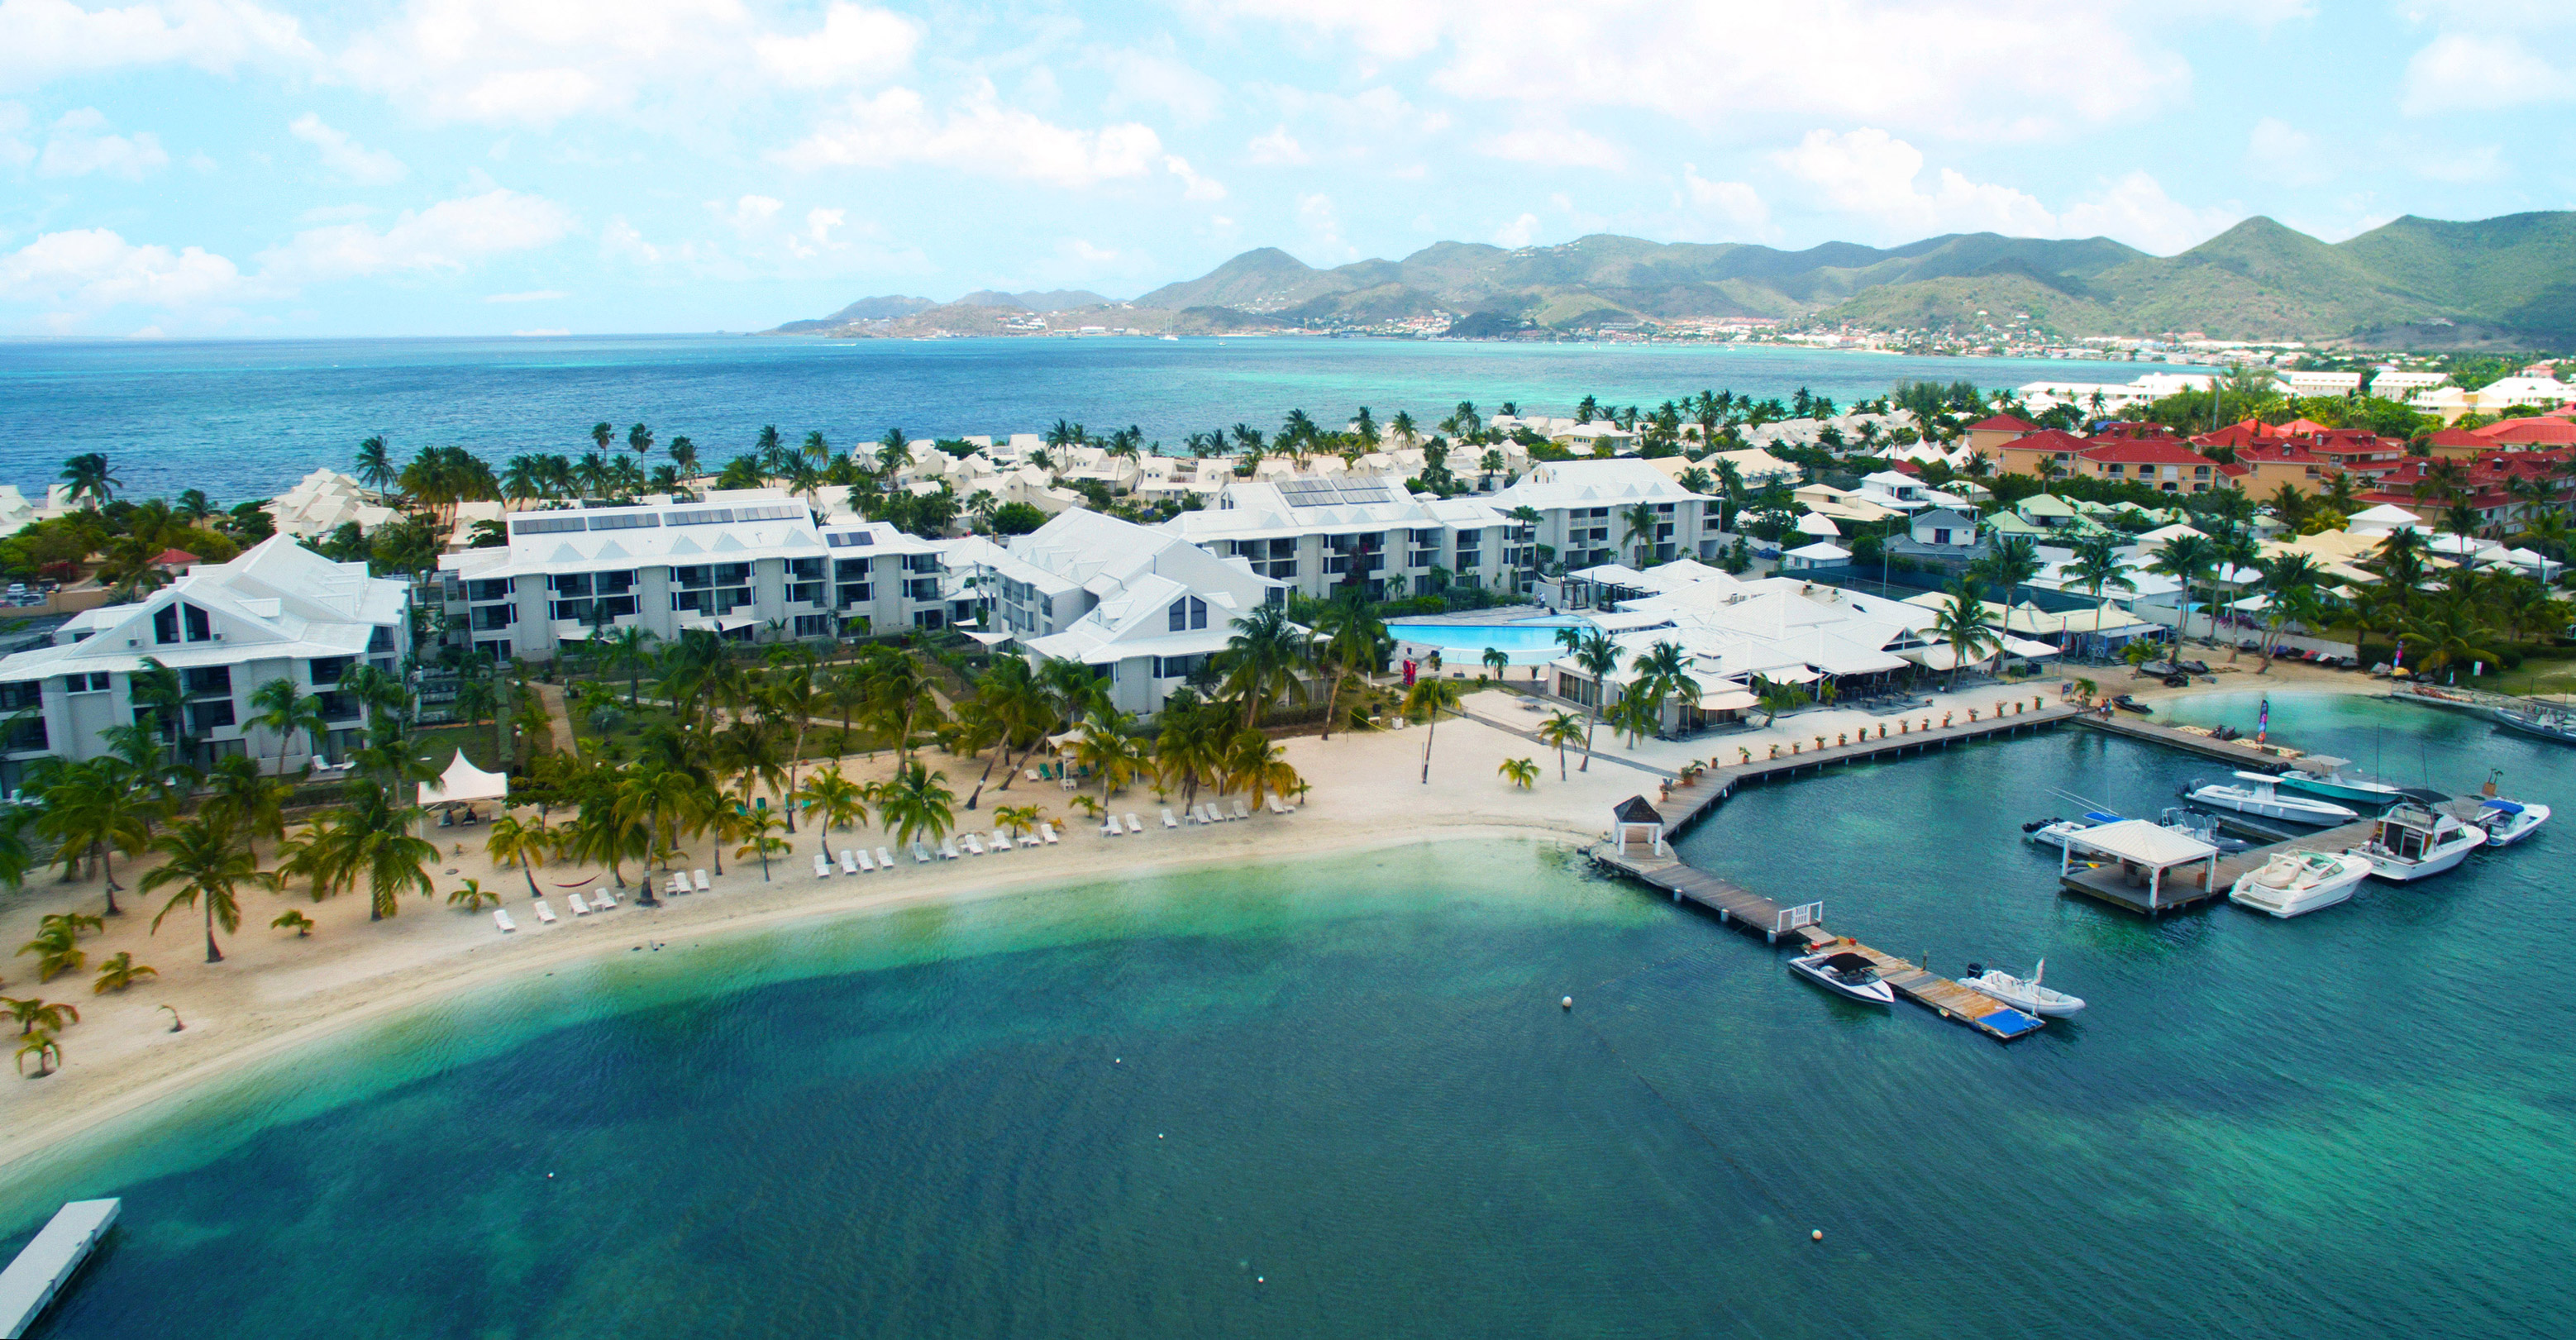 Mercure Saint Martin, Marina and Spa